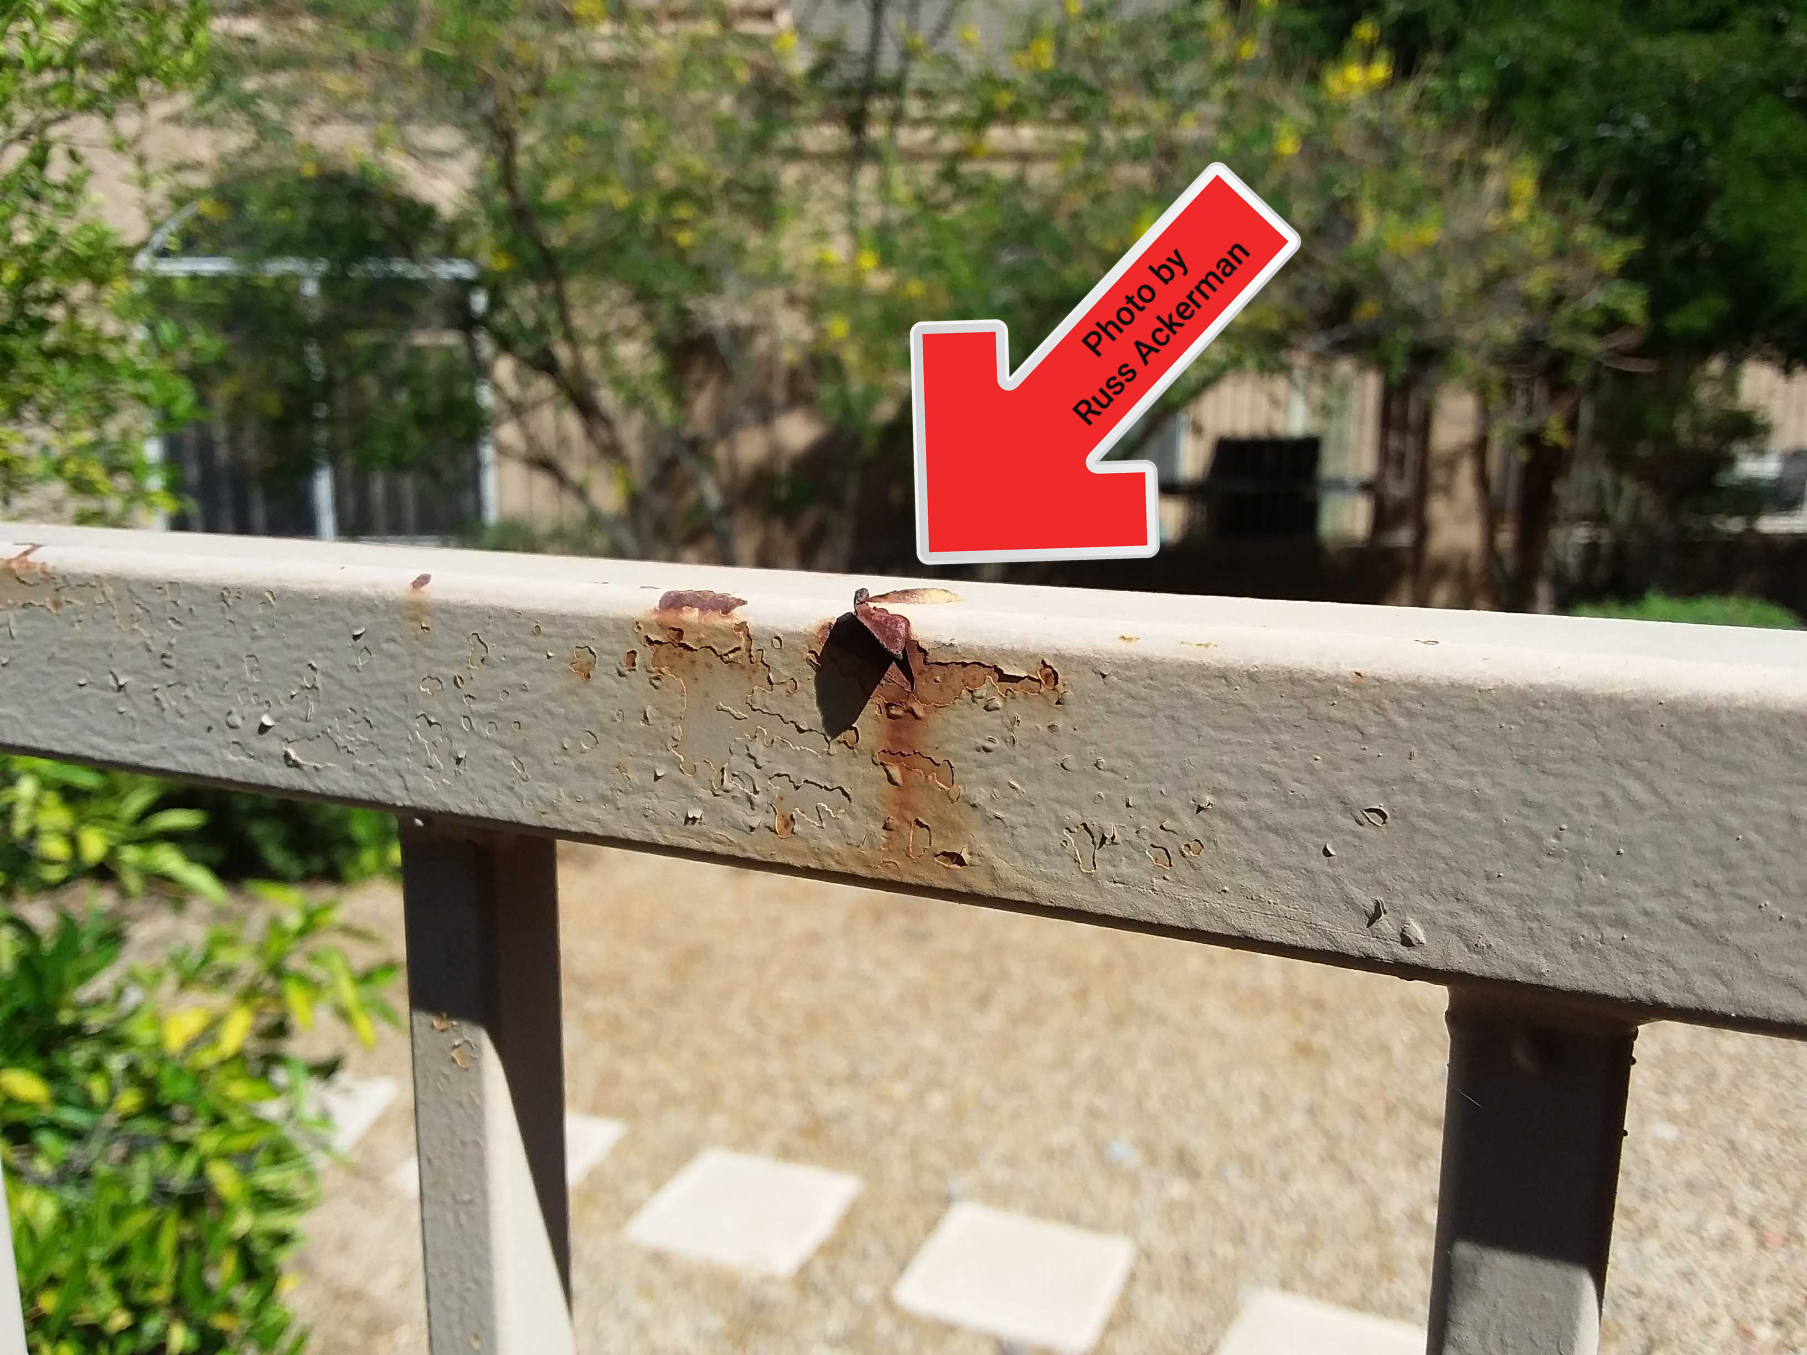 Sharp cut hazards should be minimized as metal fencing begins to rust and age over time.